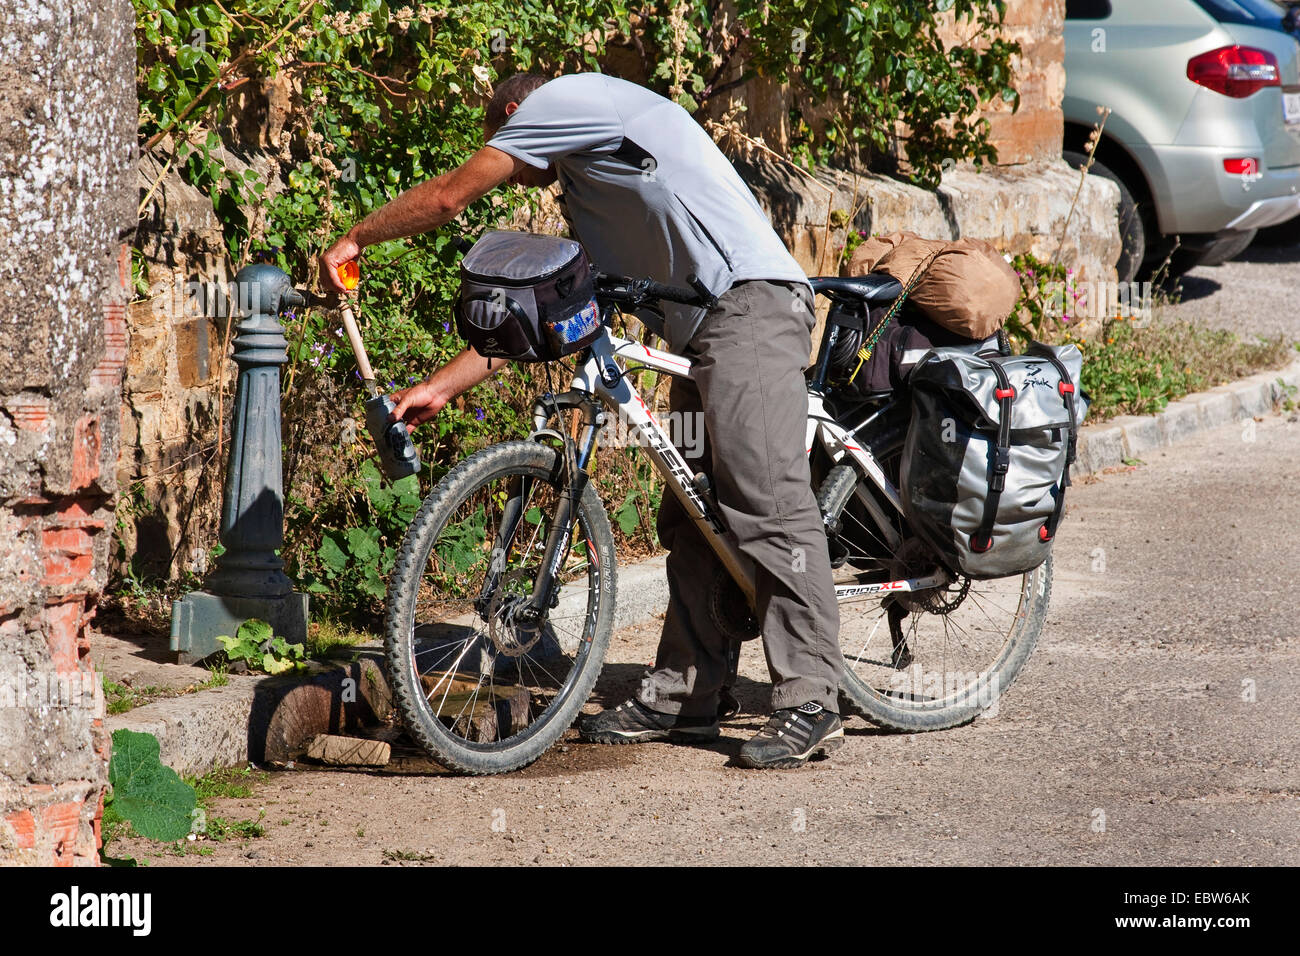 bicycle pilgrim filling up his waterbottle, Spain, Kastilien & Le�n, Leon, El Ganso - Stock Image